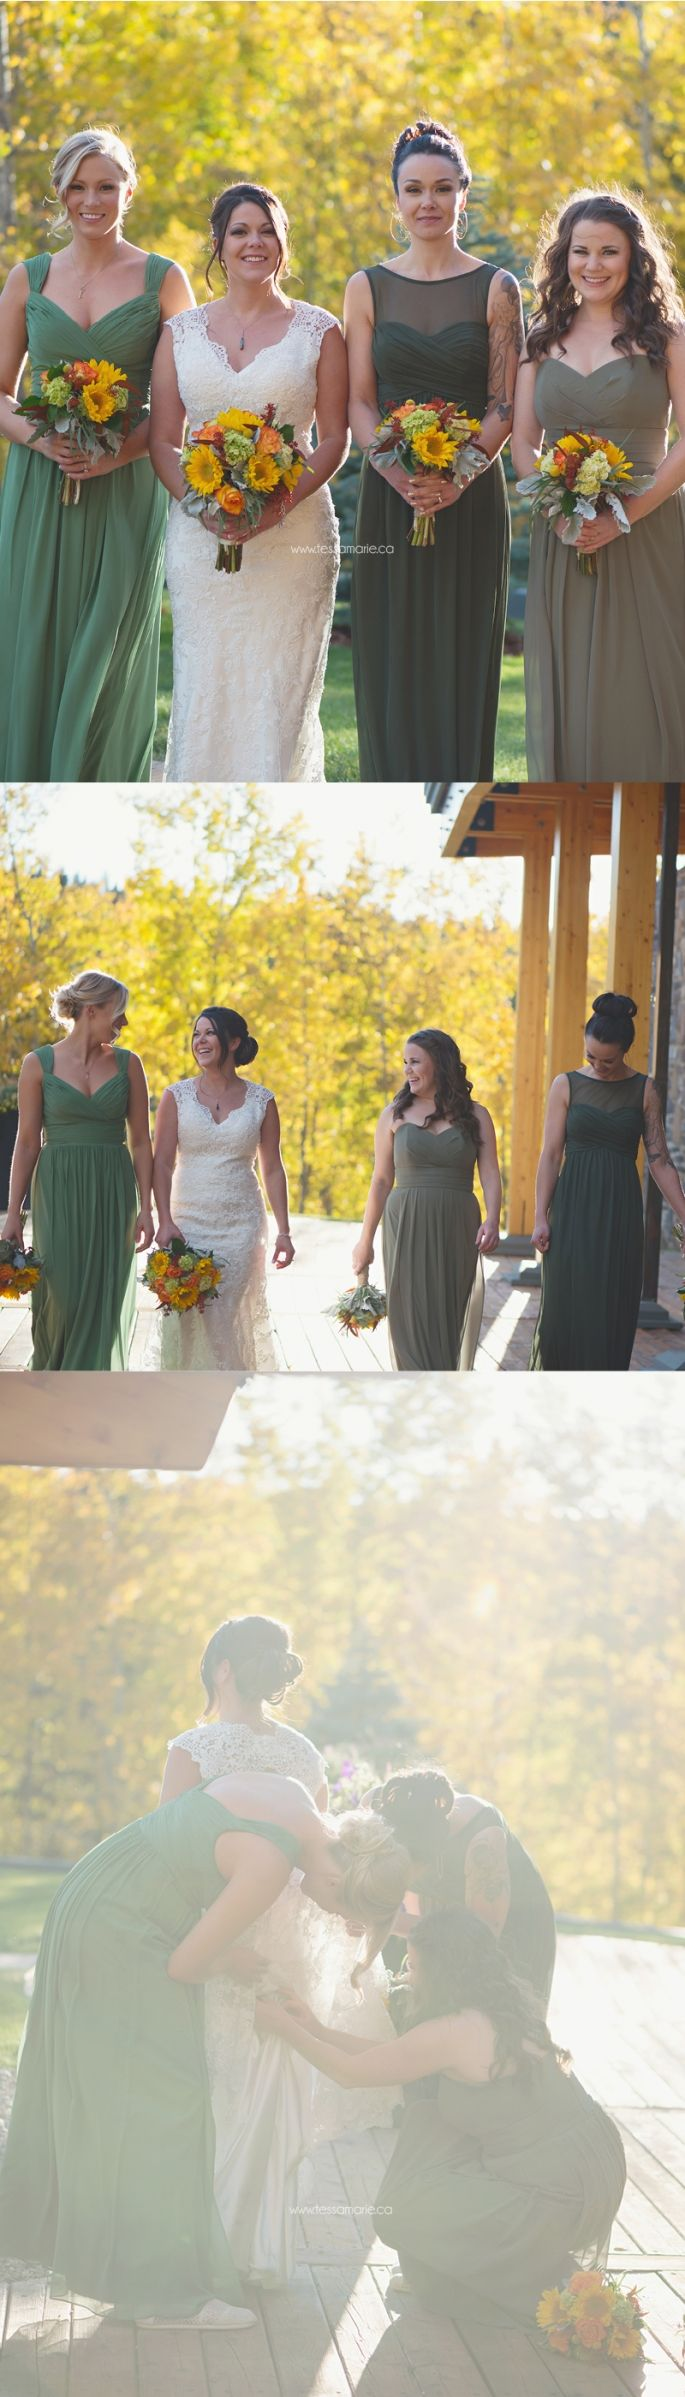 36 best bridesmaids images on pinterest bridesmaids wedding at azuridge priddis alberta calgary wedding photographer green bridesmaid dress autumn ombrellifo Images